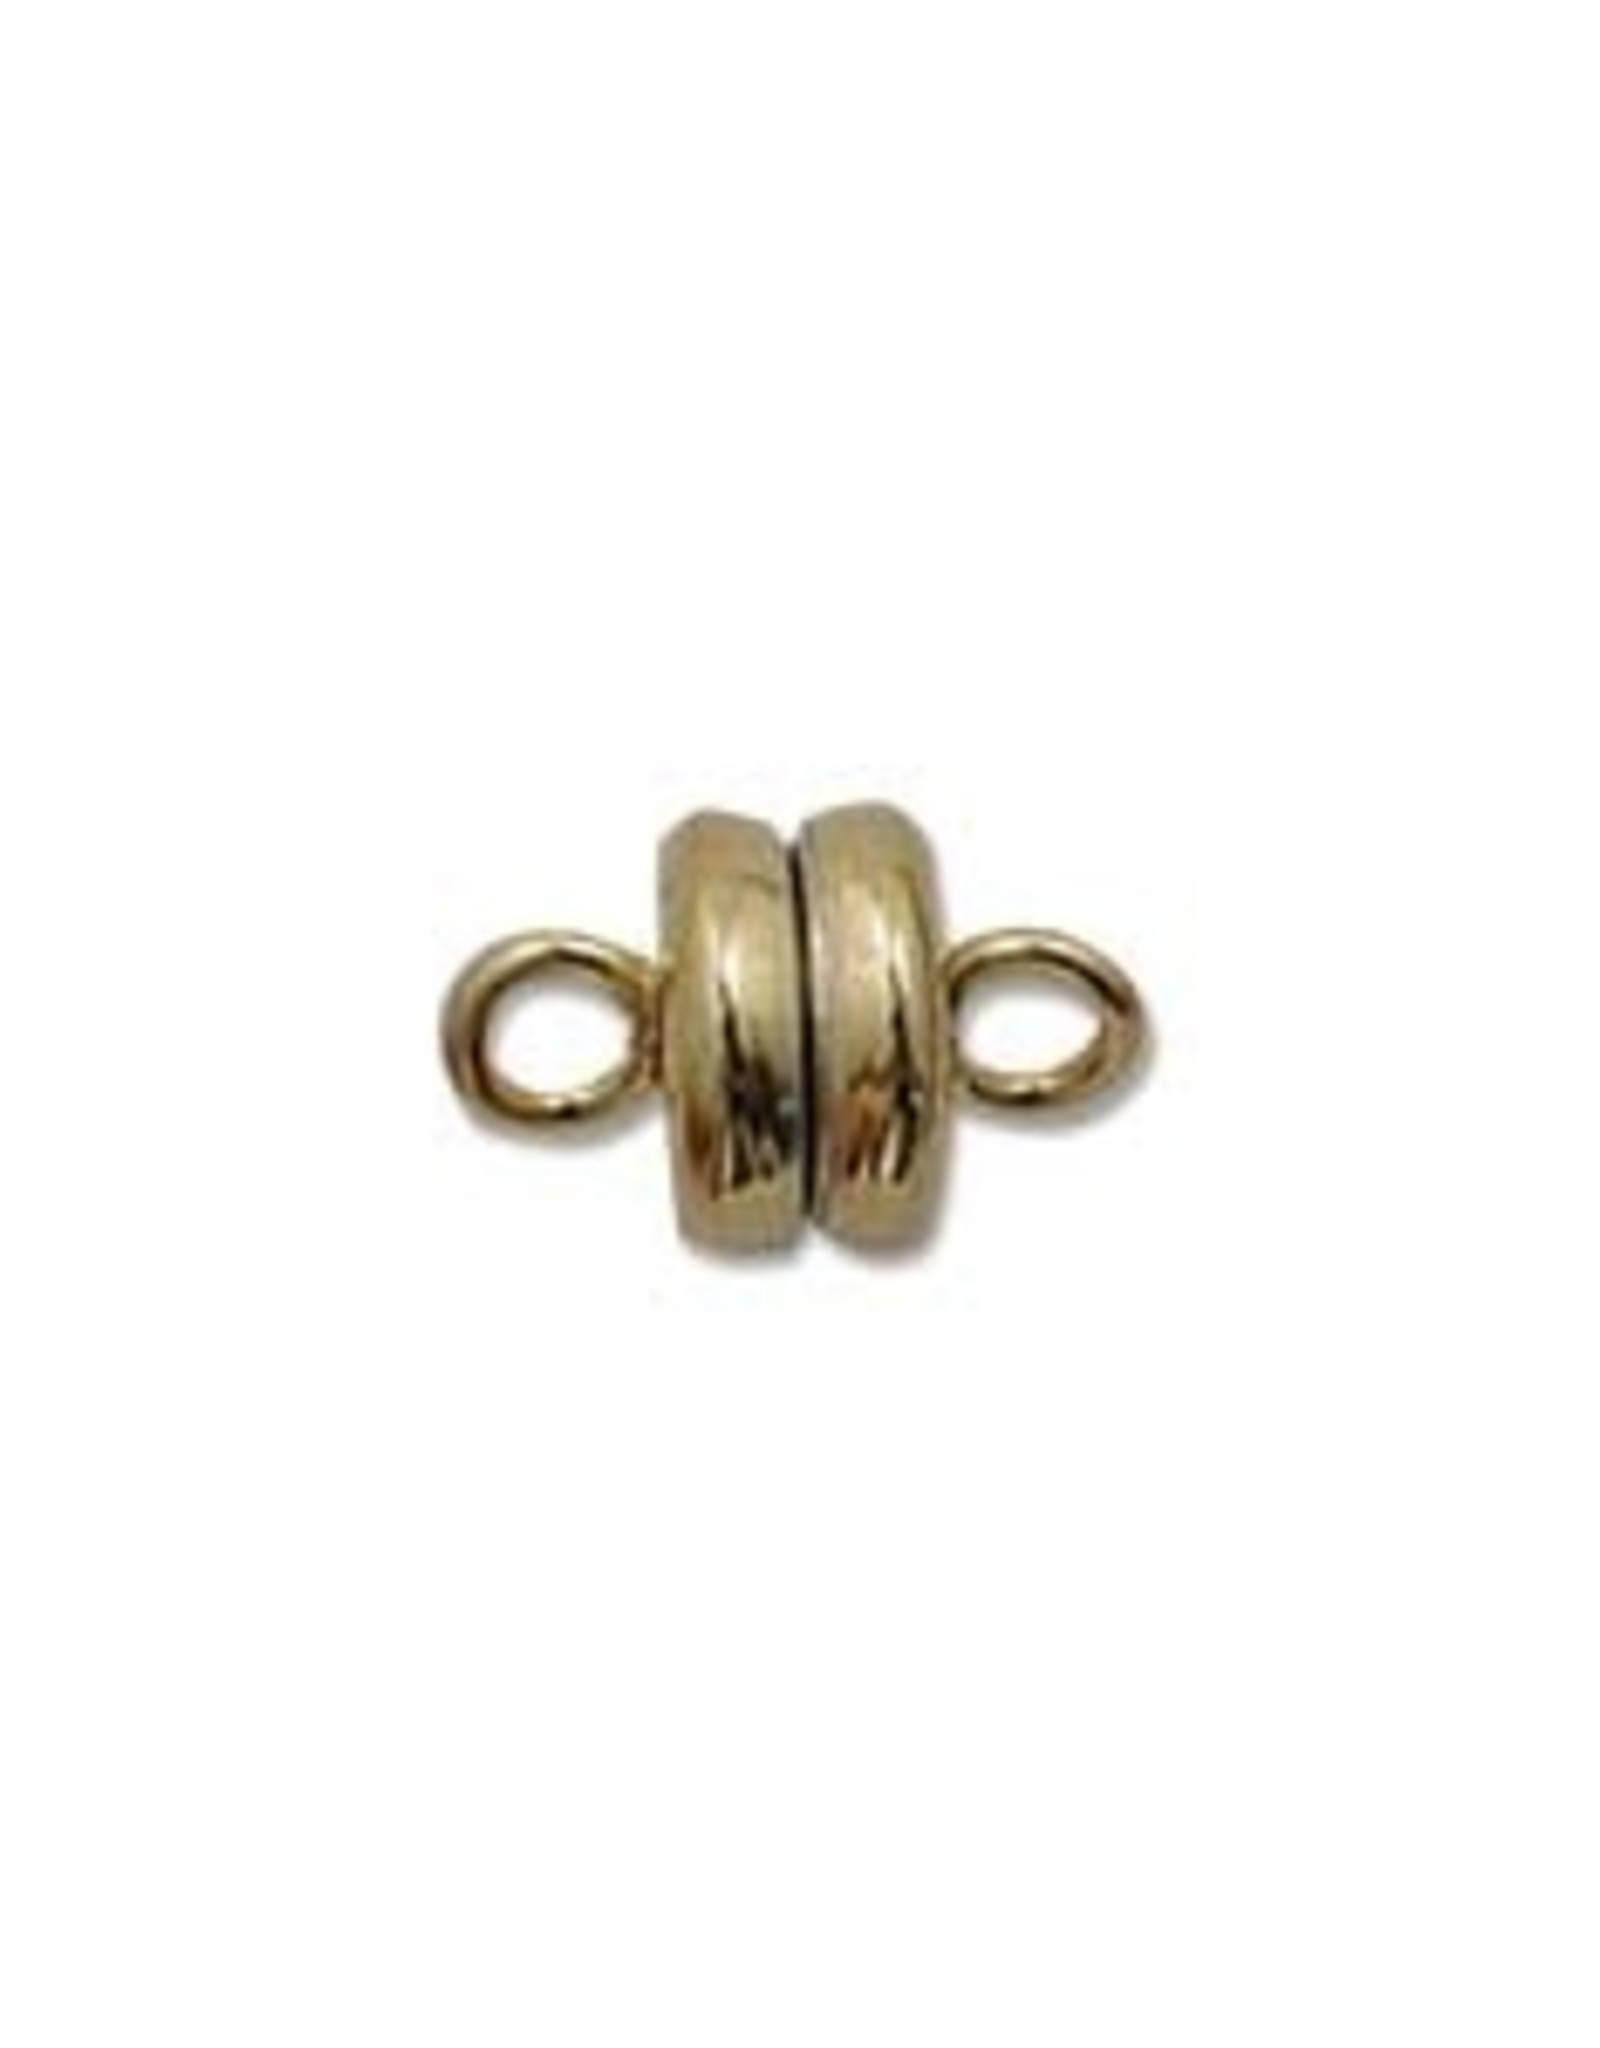 6mm Mag Clasp Gold Plate Qty 3